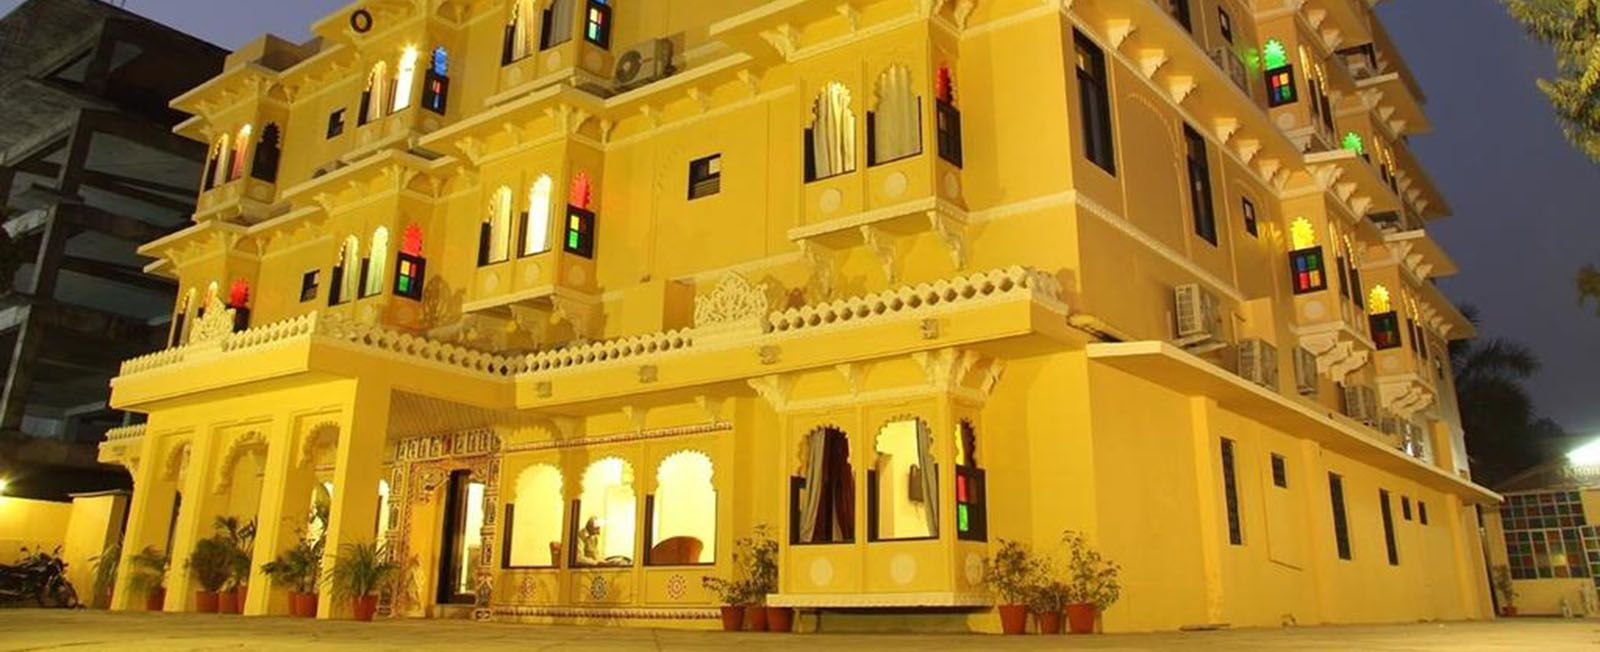 Best Luxury Boutique Hotel In Udaipur Heritage Hotel In Udaipur